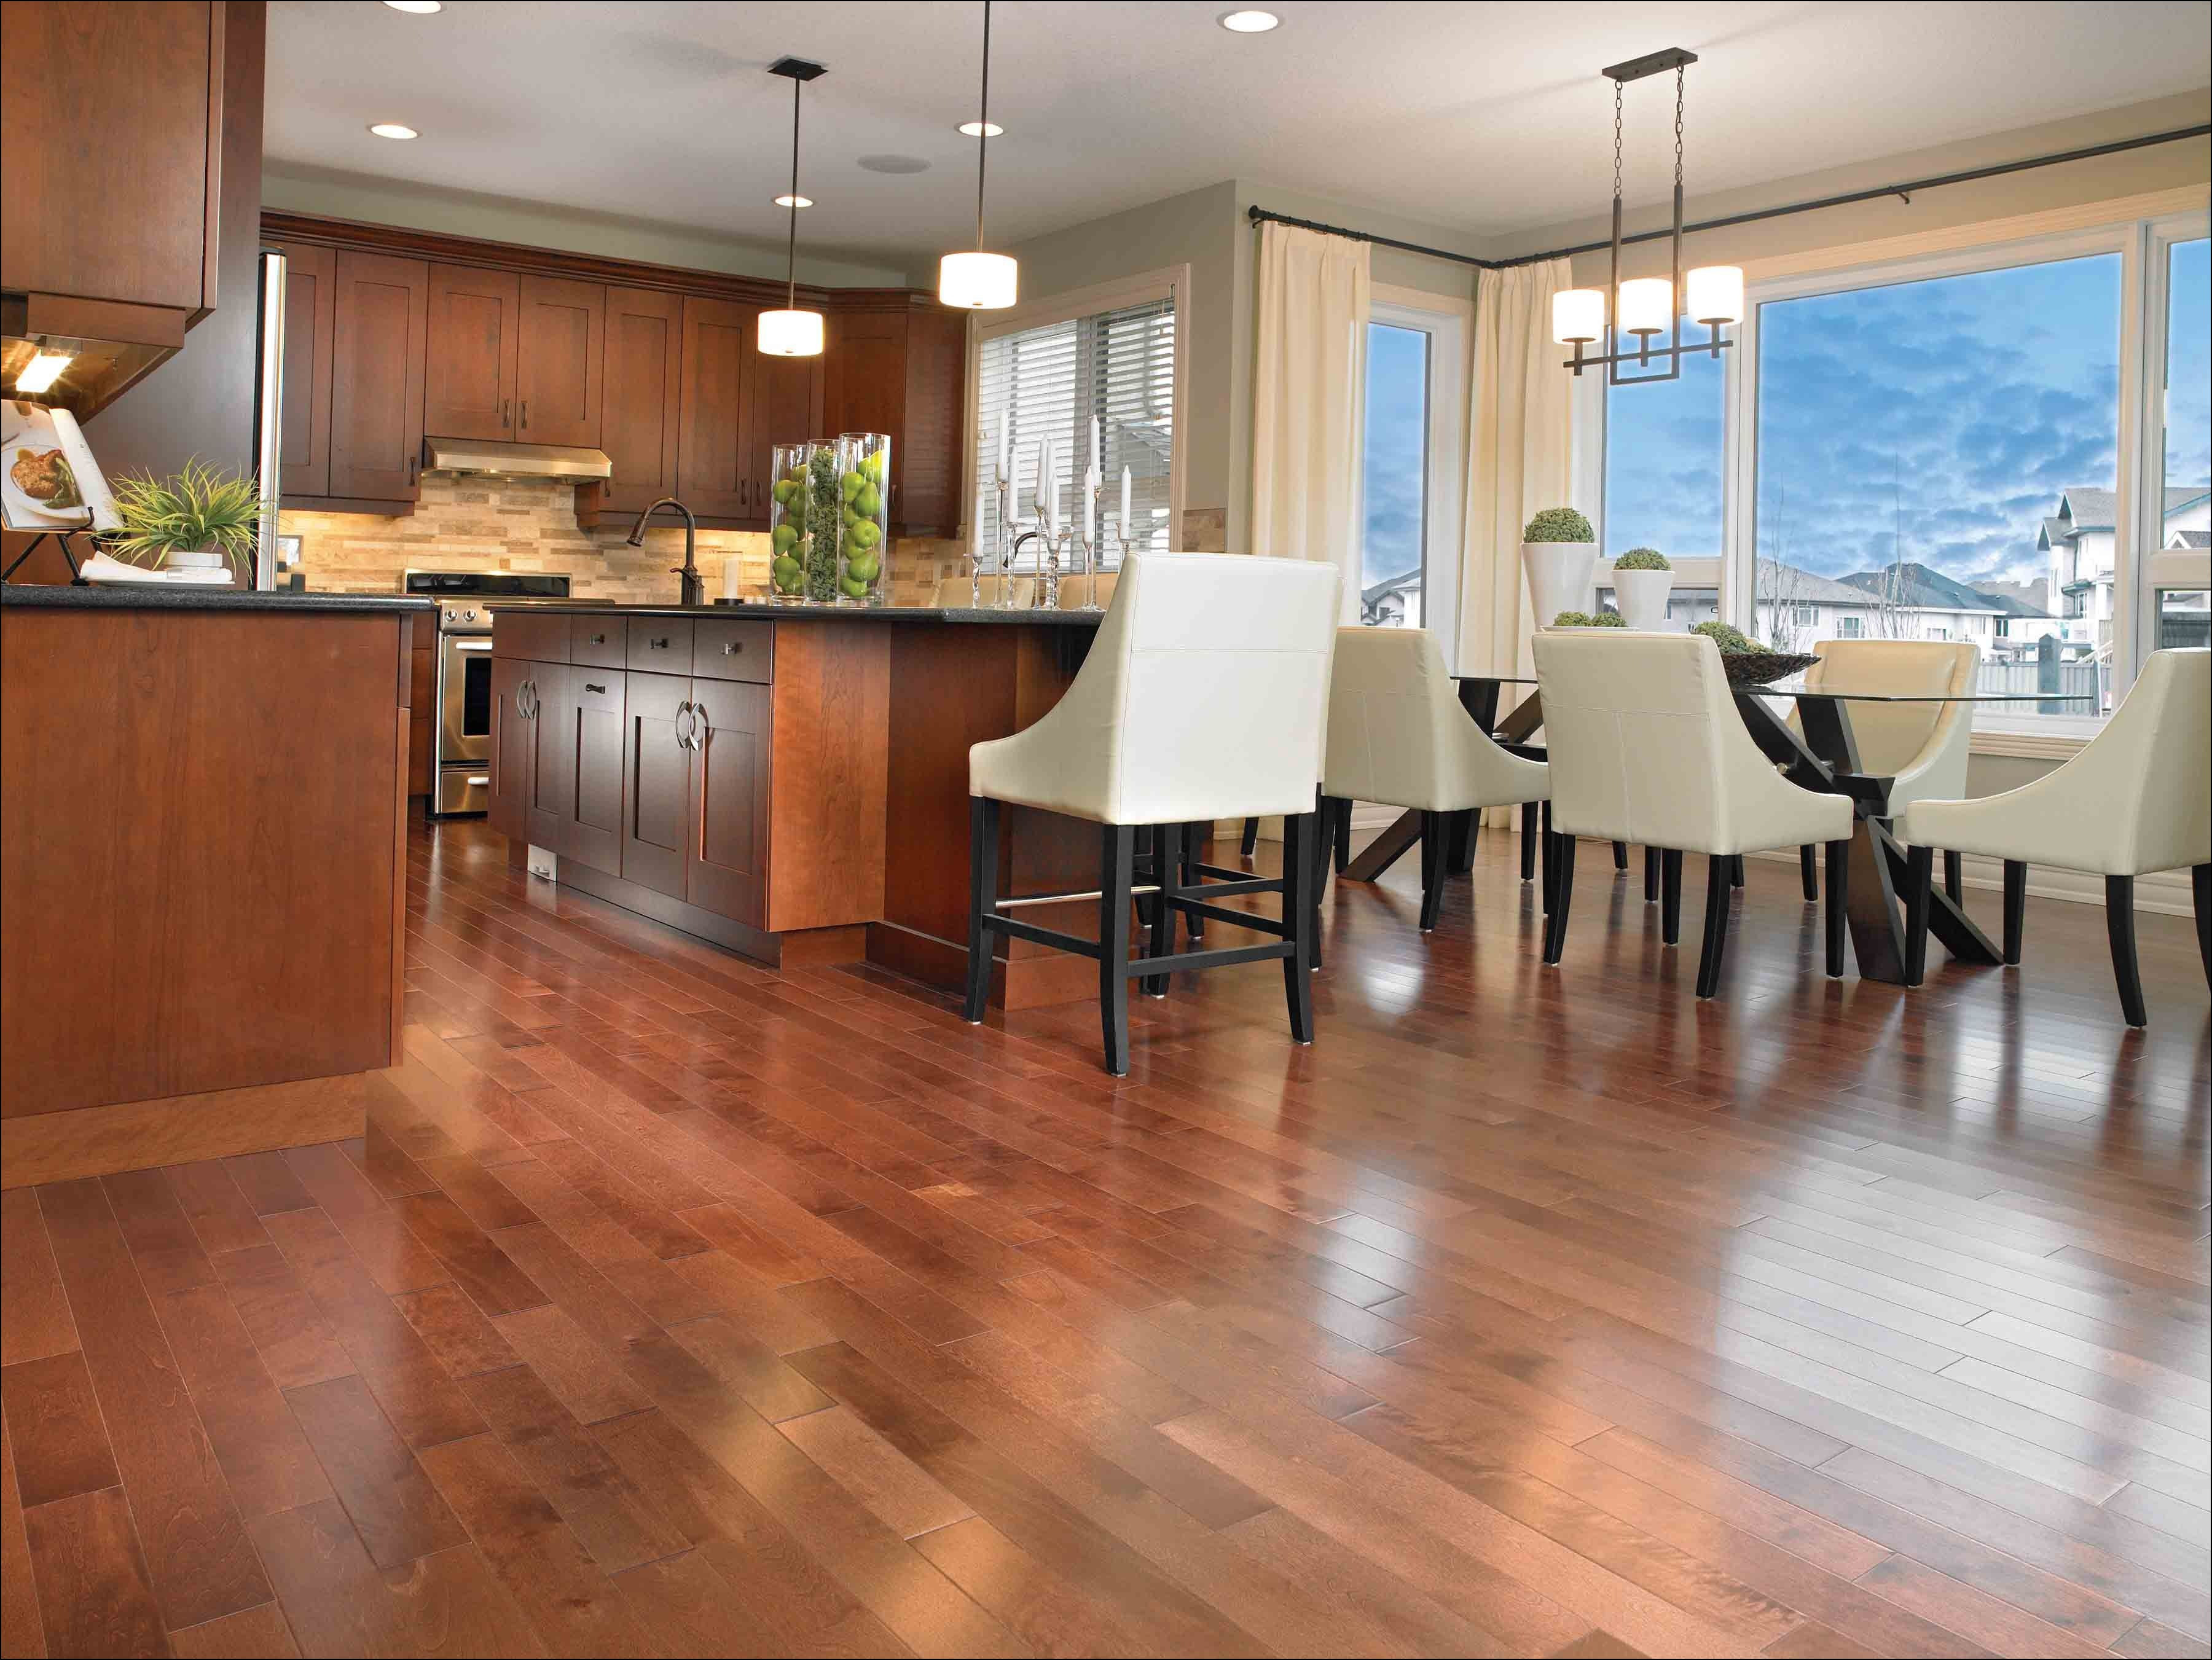 Hardwood Floor Refinishing toronto On Of Hardwood Flooring Suppliers France Flooring Ideas Regarding Hardwood Flooring Installation San Diego Images 54 Best Exotic Flooring Images On Pinterest Of Hardwood Flooring